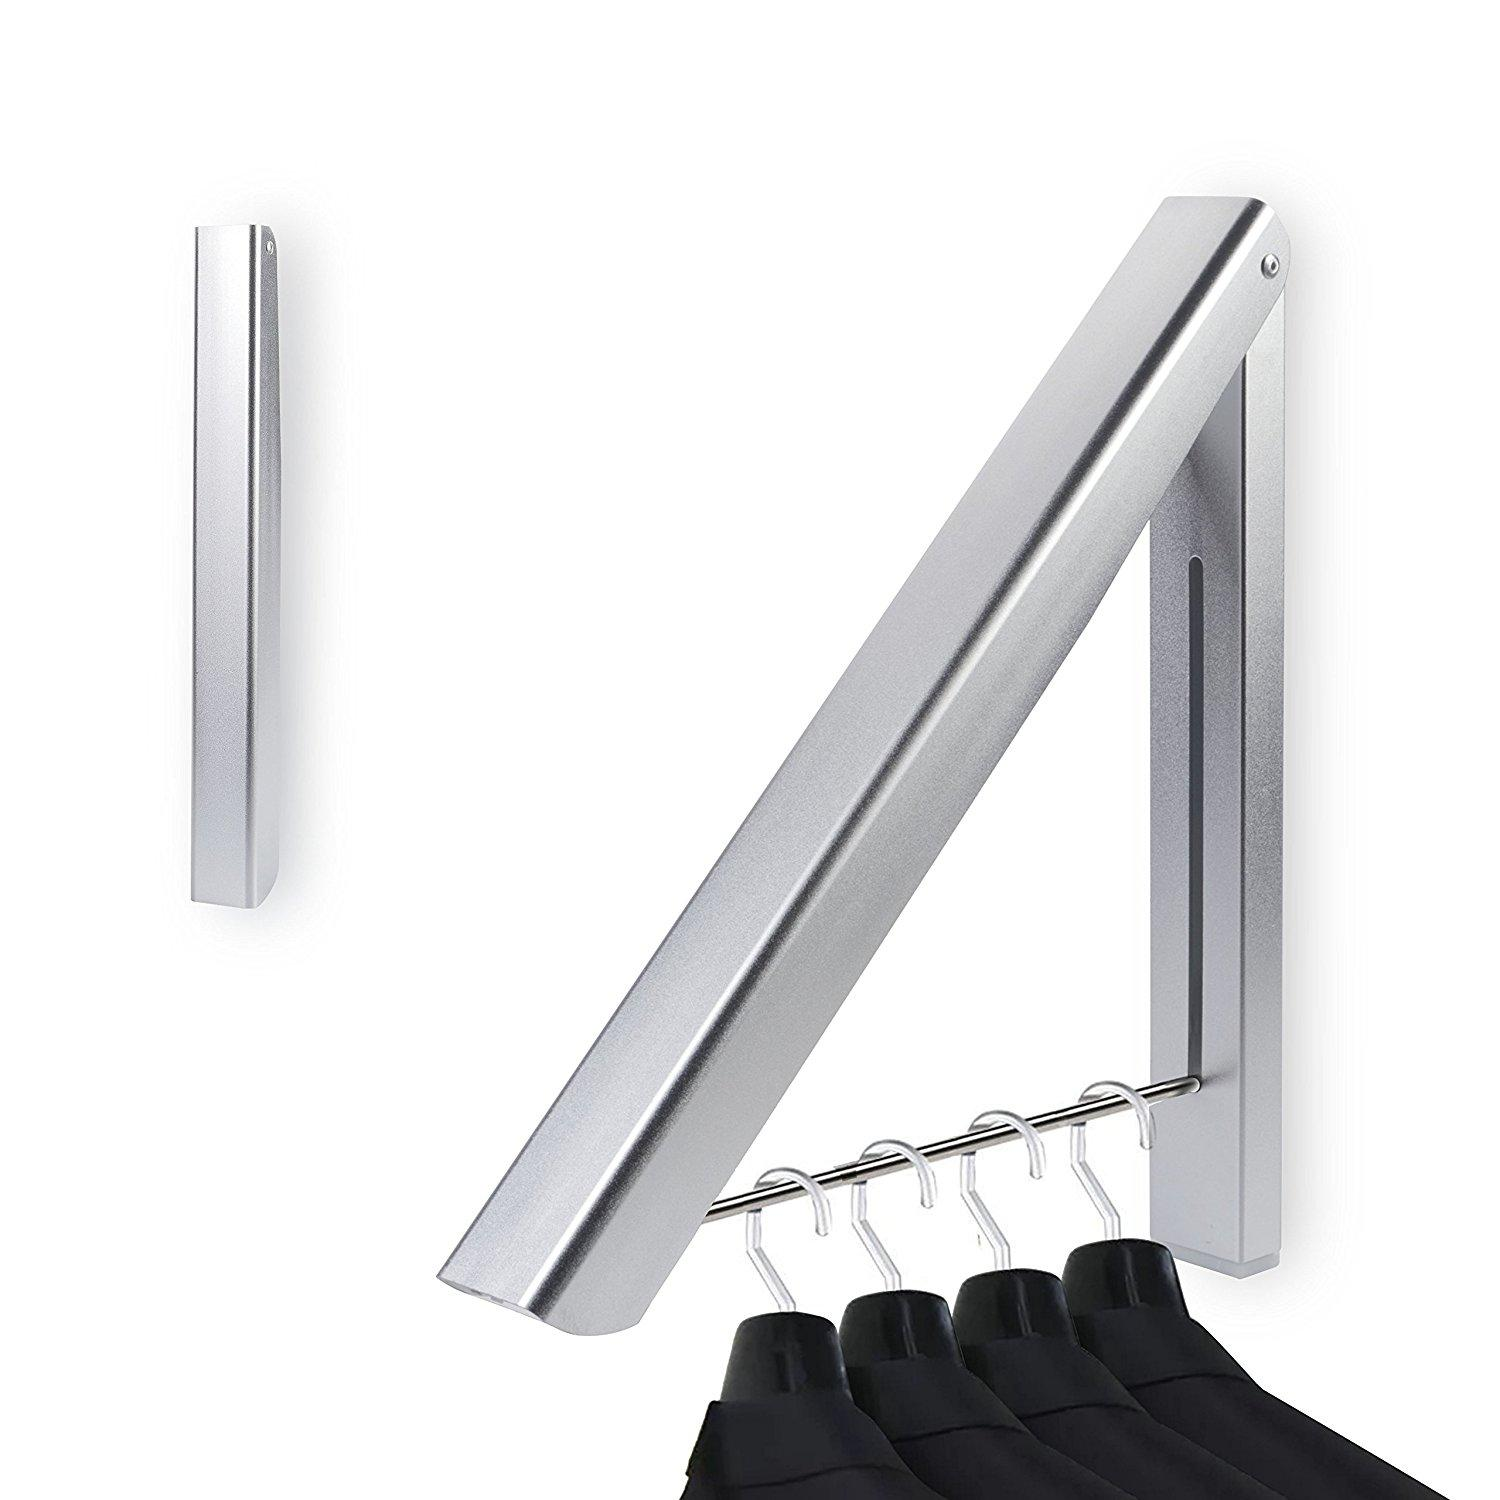 Black White Wall Hook Shelf Aluminum Bathroom Towel Holder Towel Rack Cloth Robe Hook Coat Hanger Balcony Accessories Etagere Without Return Bathroom Shelves